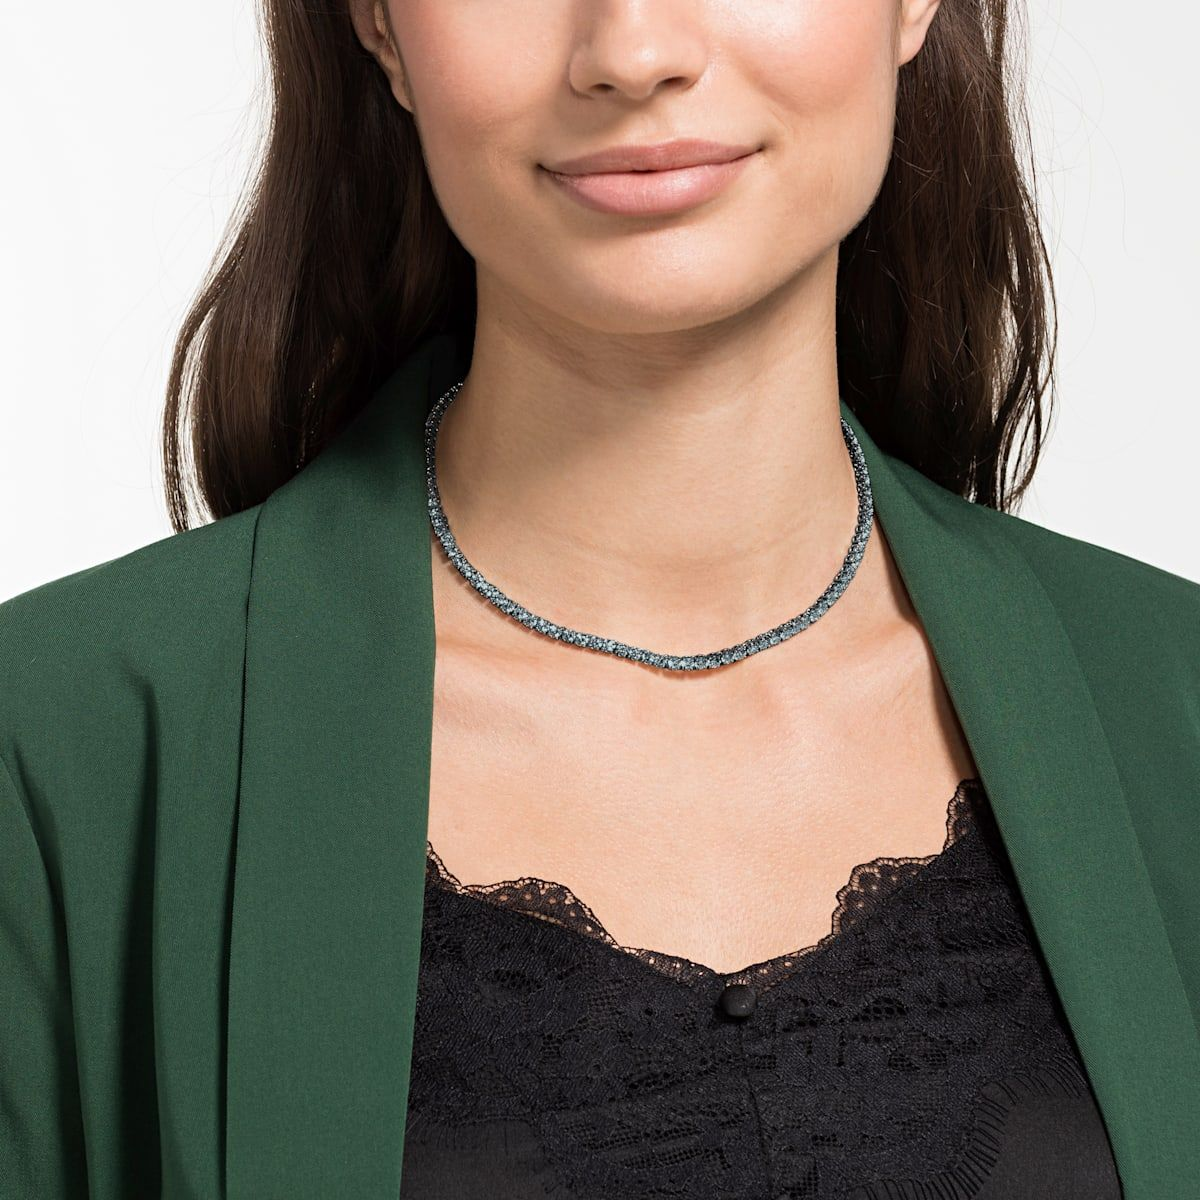 Tennis Deluxe Necklace Black Ruthenium Plated By Swarovski New Necklace Designs Necklace Crystal Necklace